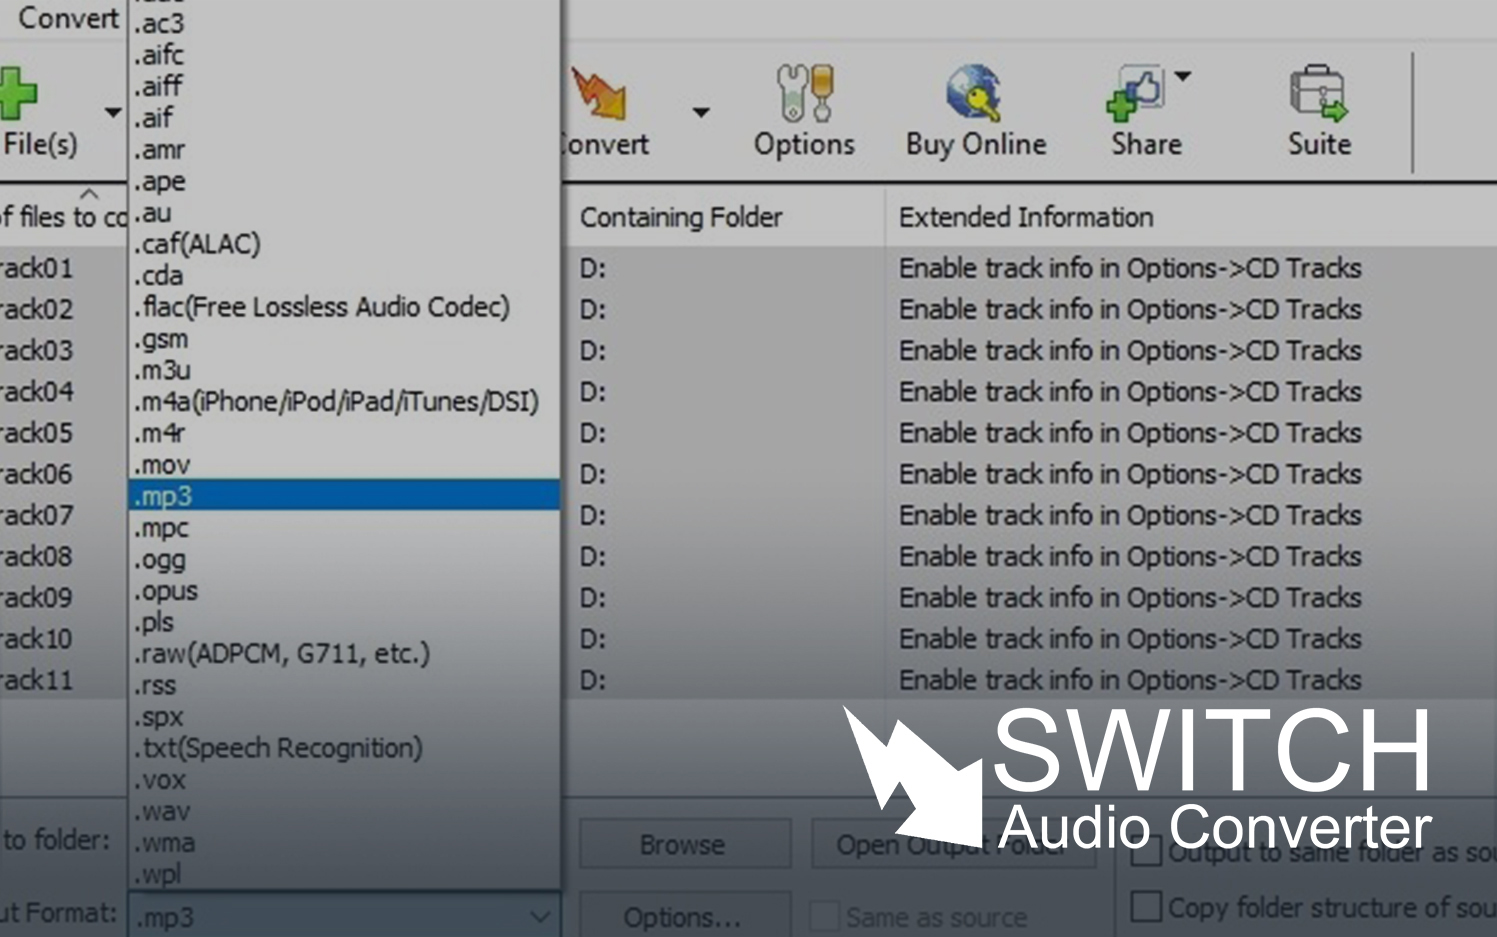 Best Audio Converter Software 2019 - Reviews and Test Results | Top